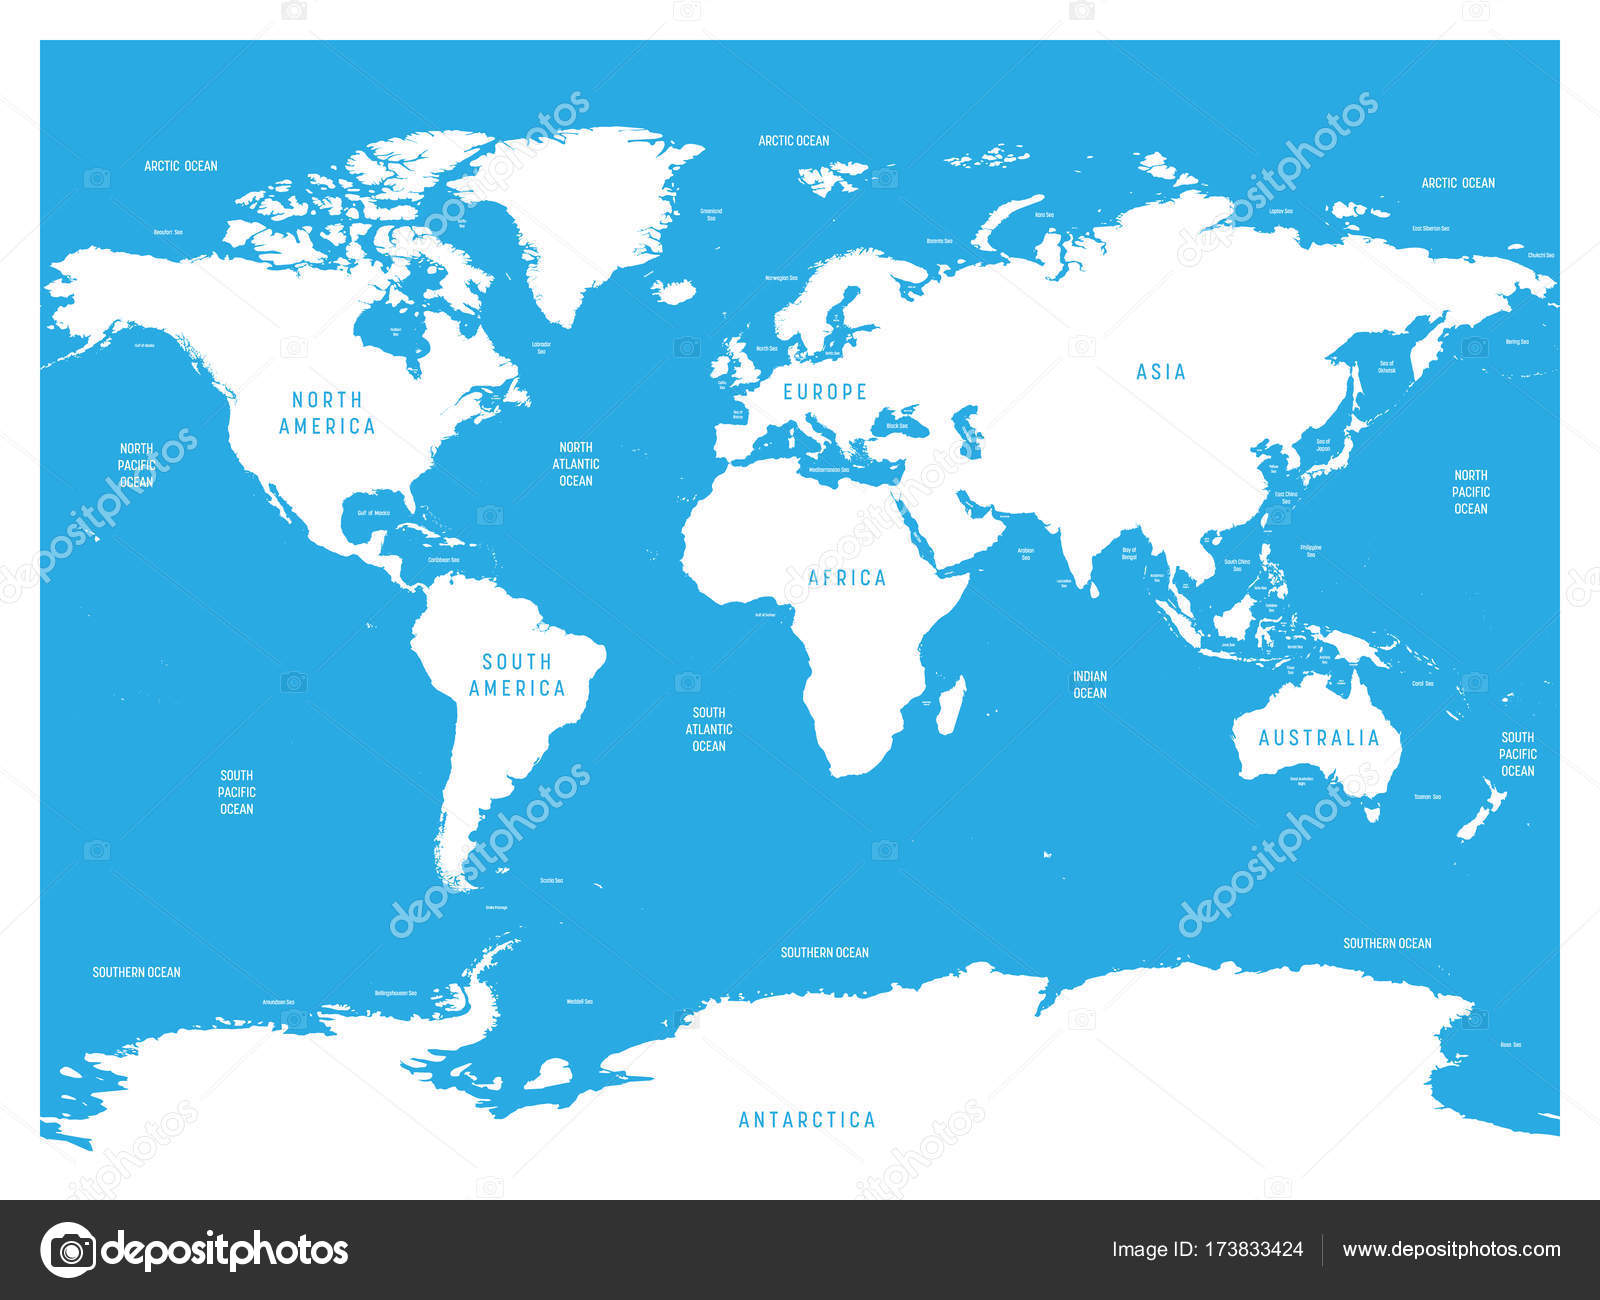 Oceanographical Map Of World With Labels Of Oceans Seas Gulfs - World map showing seas